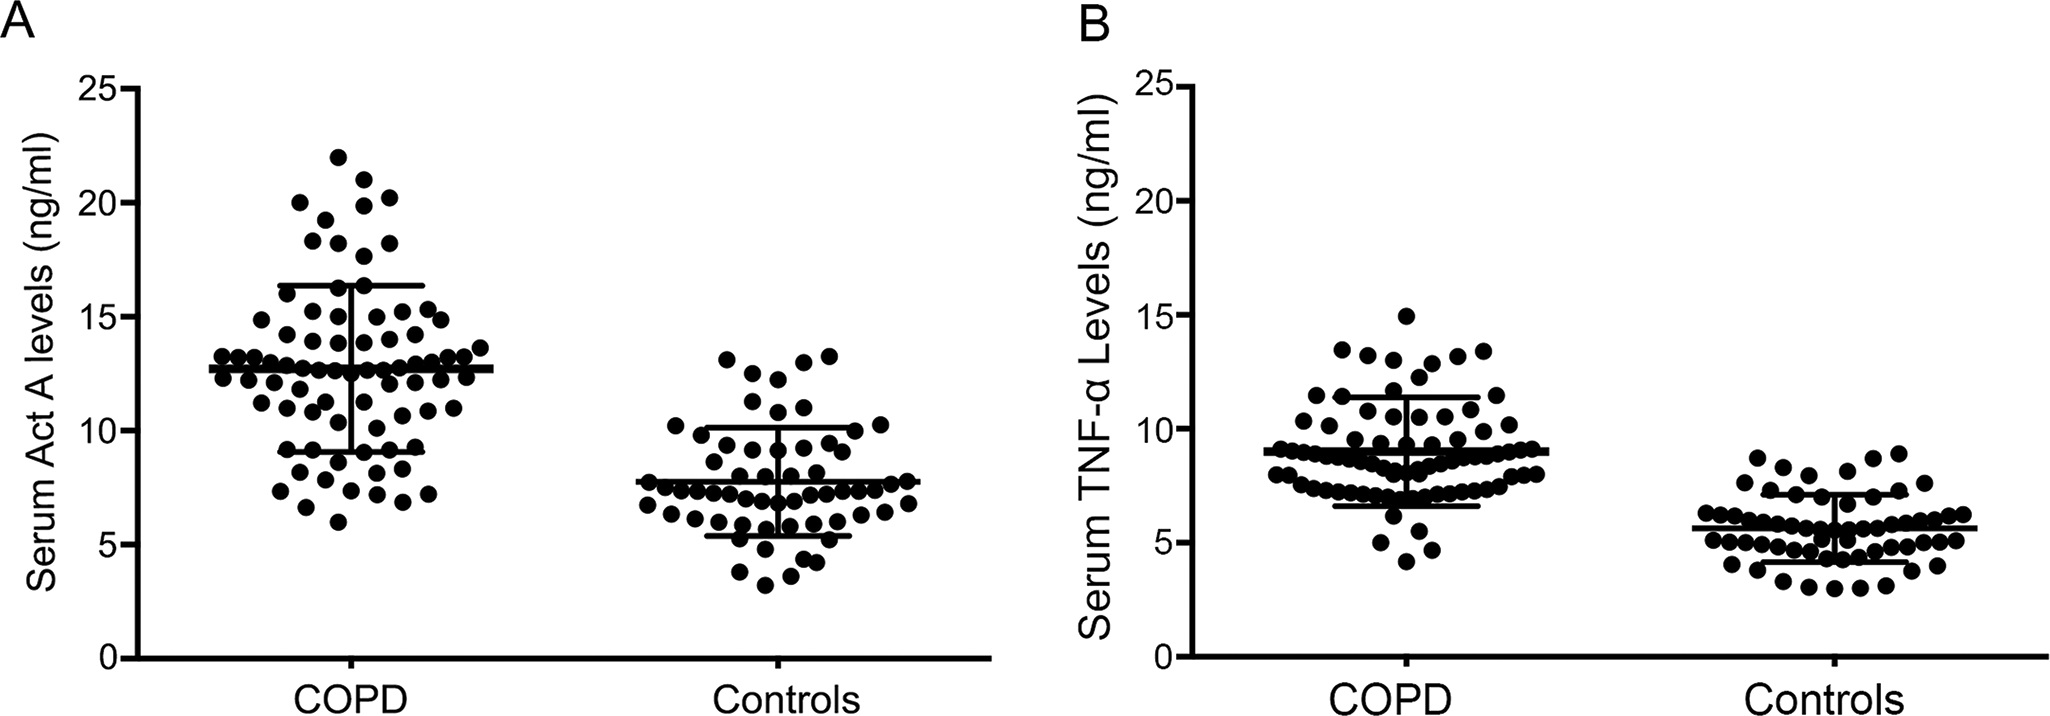 Serum levels of Activin A and TNF-α in COPD patients. A: Elevated serum Activin A levels were present in COPD patients relative to controls. B: Serum TNF-α levels were significantly increased in patients with COPD.